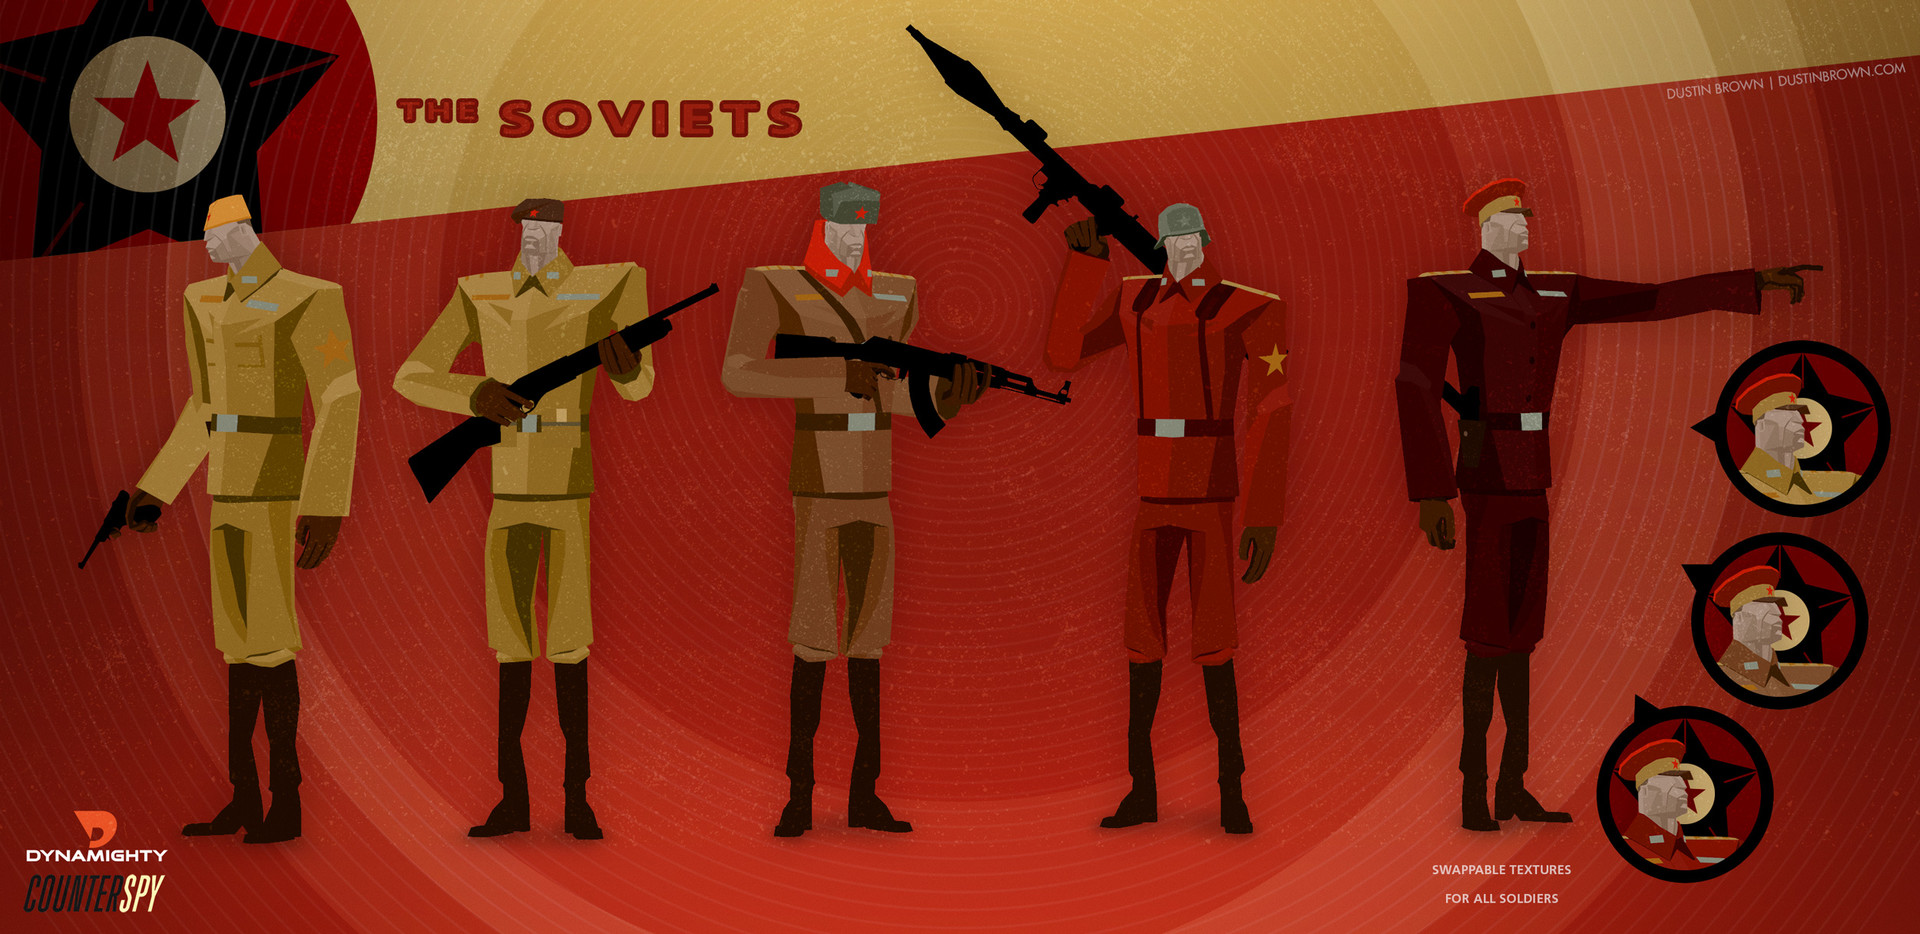 Dustin brown dustinbrown counterspy soldierssoviet